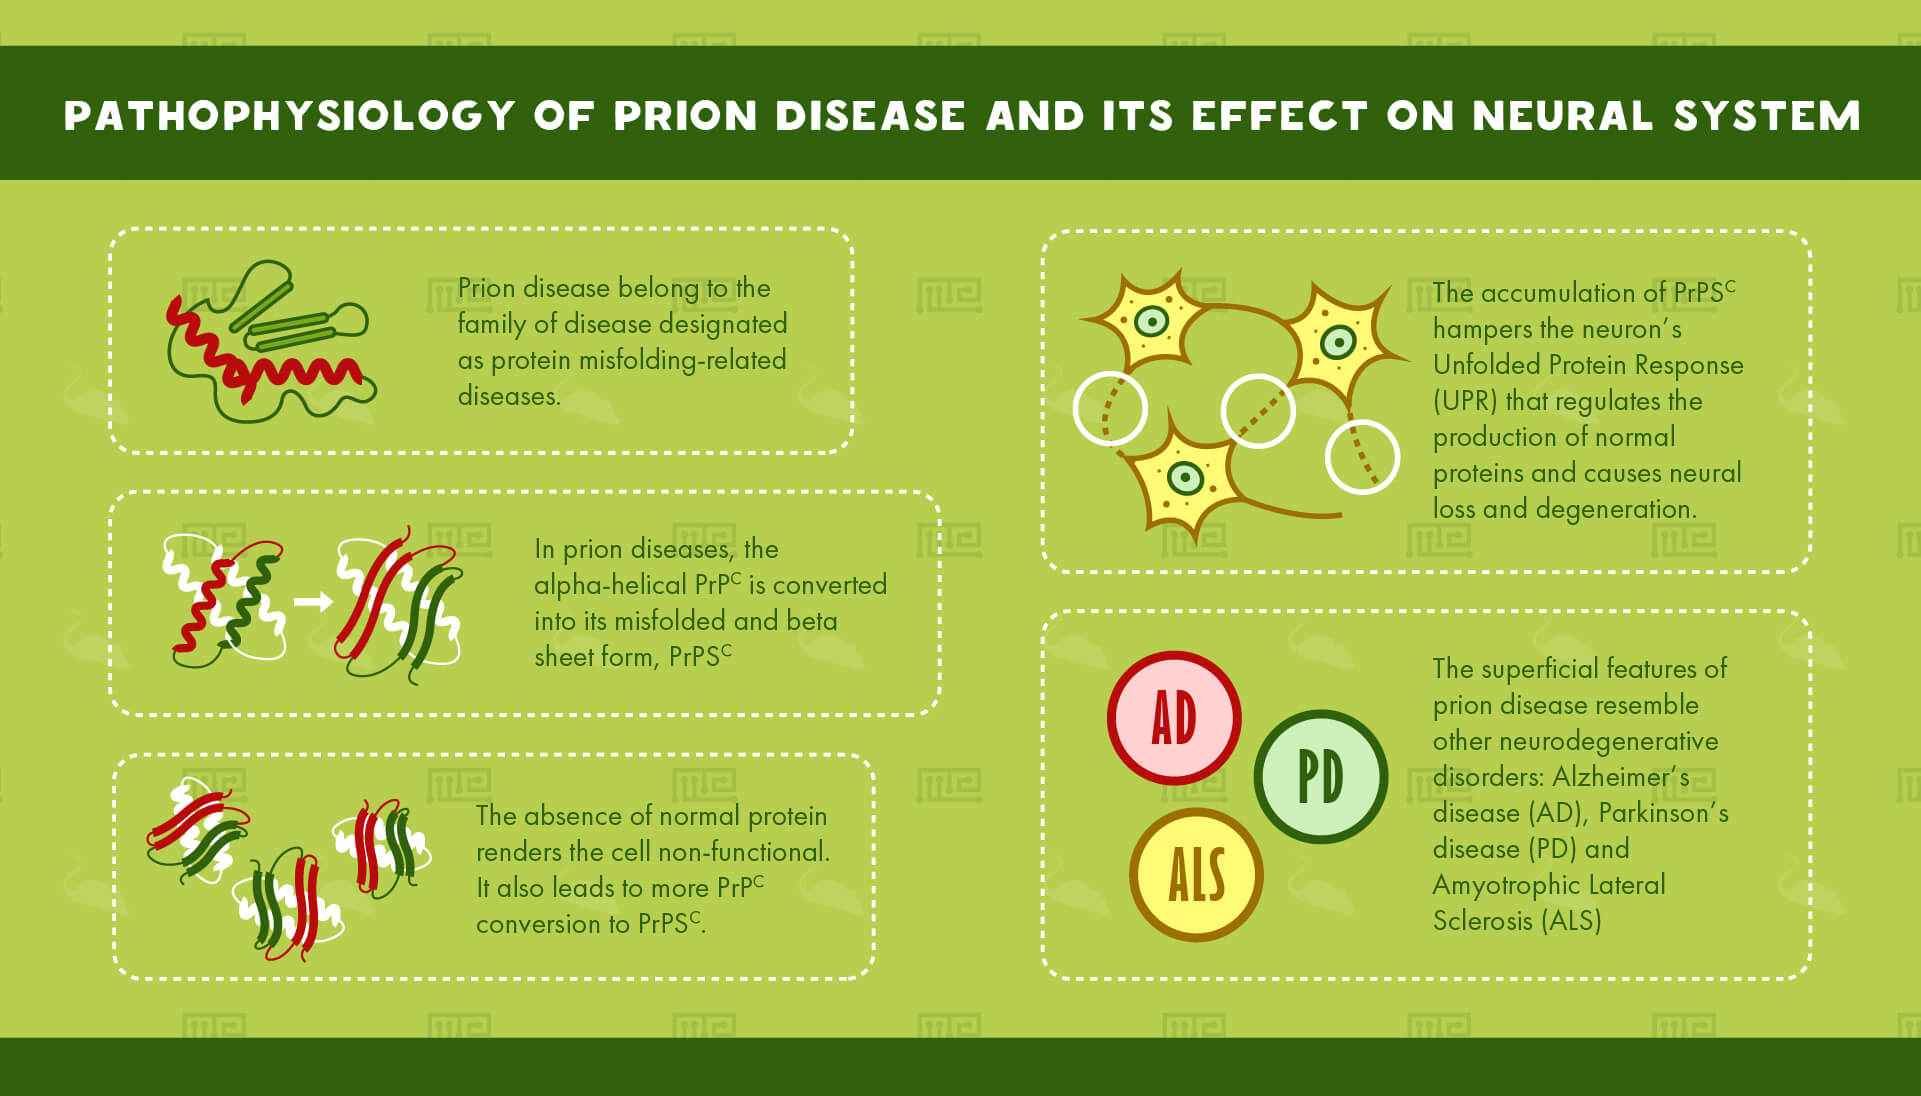 Pathophysiology of Prion Disease and its effect on neural system